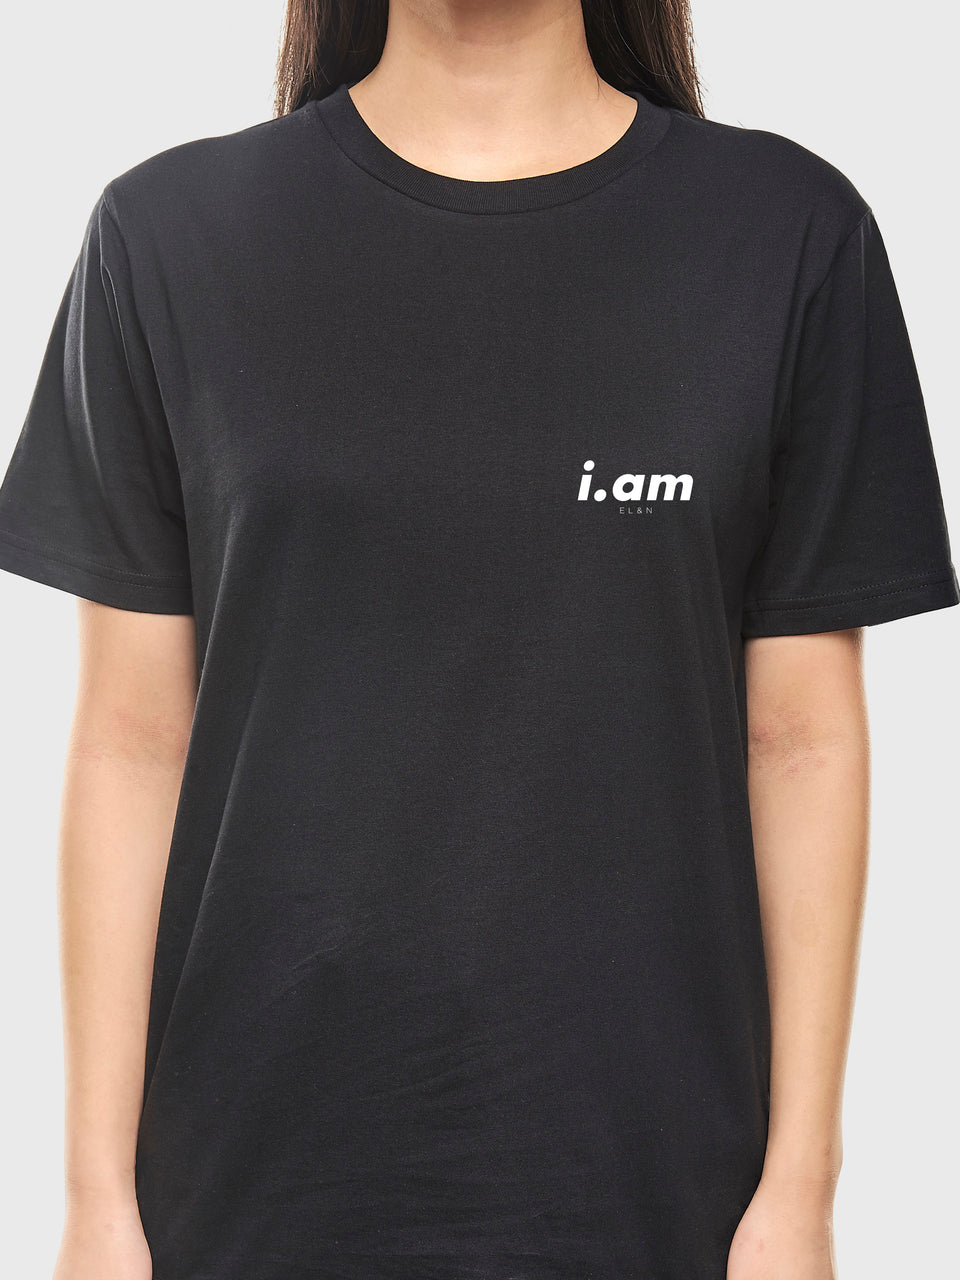 Am.bisch.ous - Black - unisex T